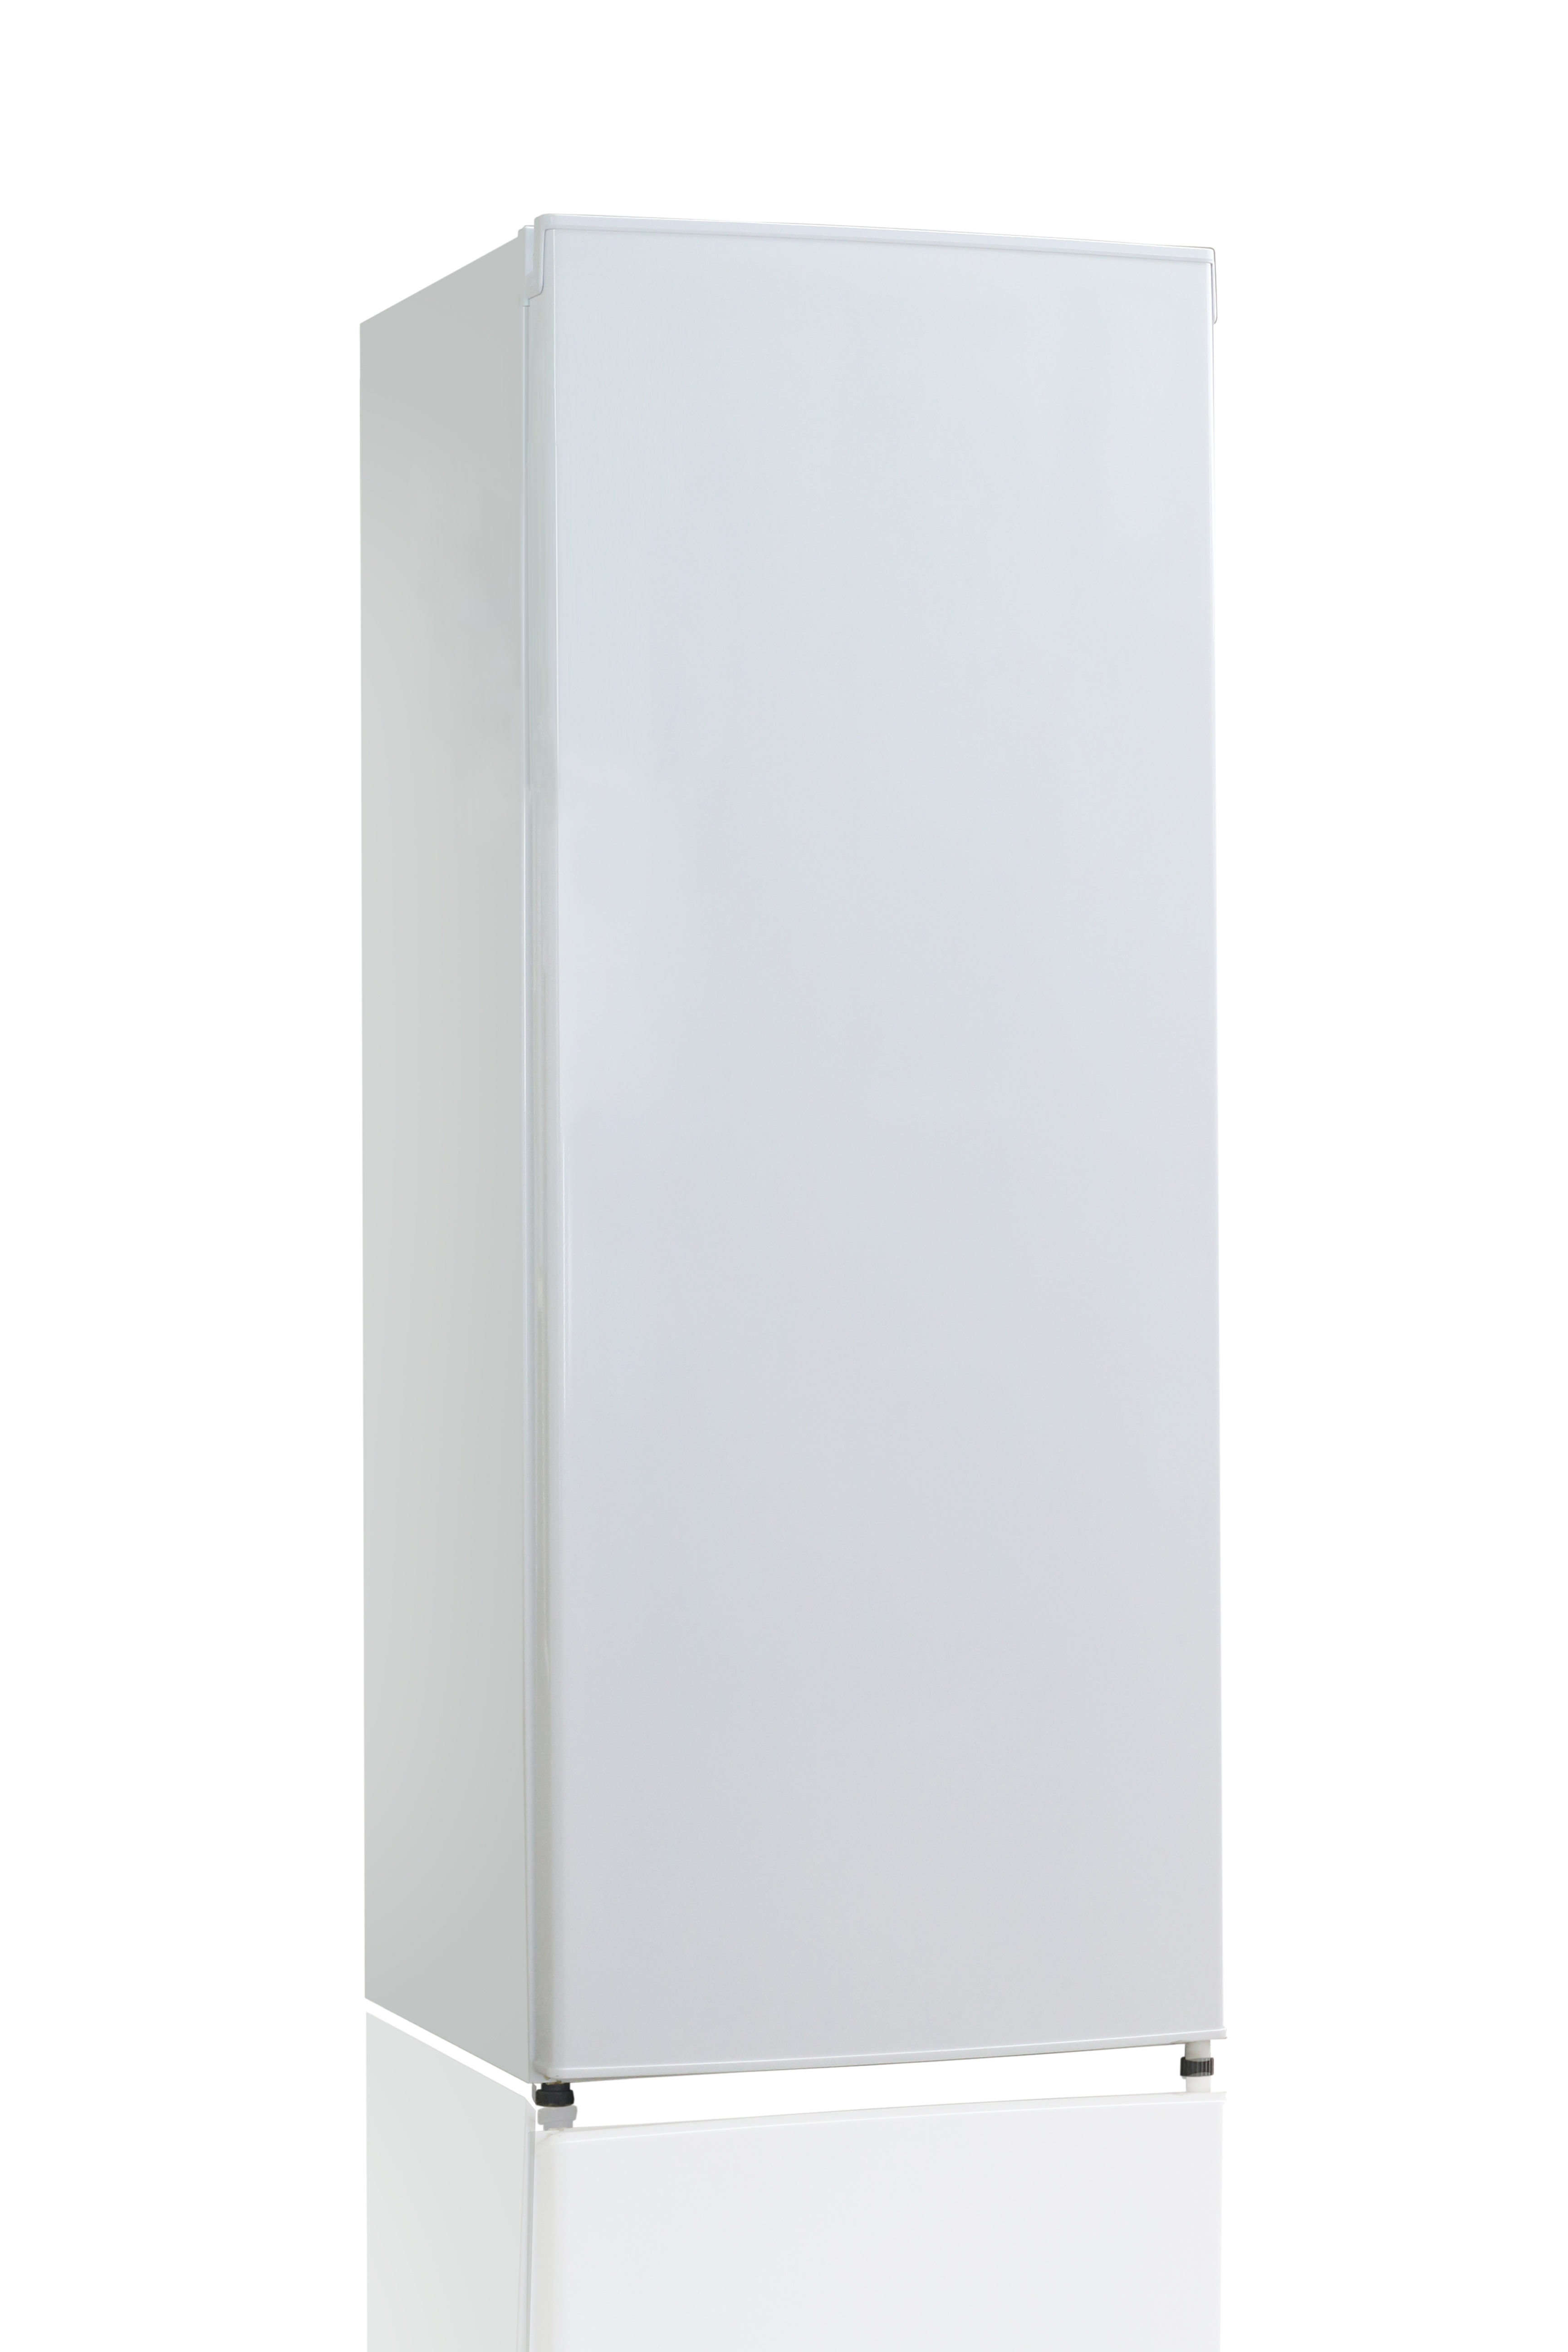 Moffat Freezer MUF06DMRWW in White color showcased by Corbeil Electro Store